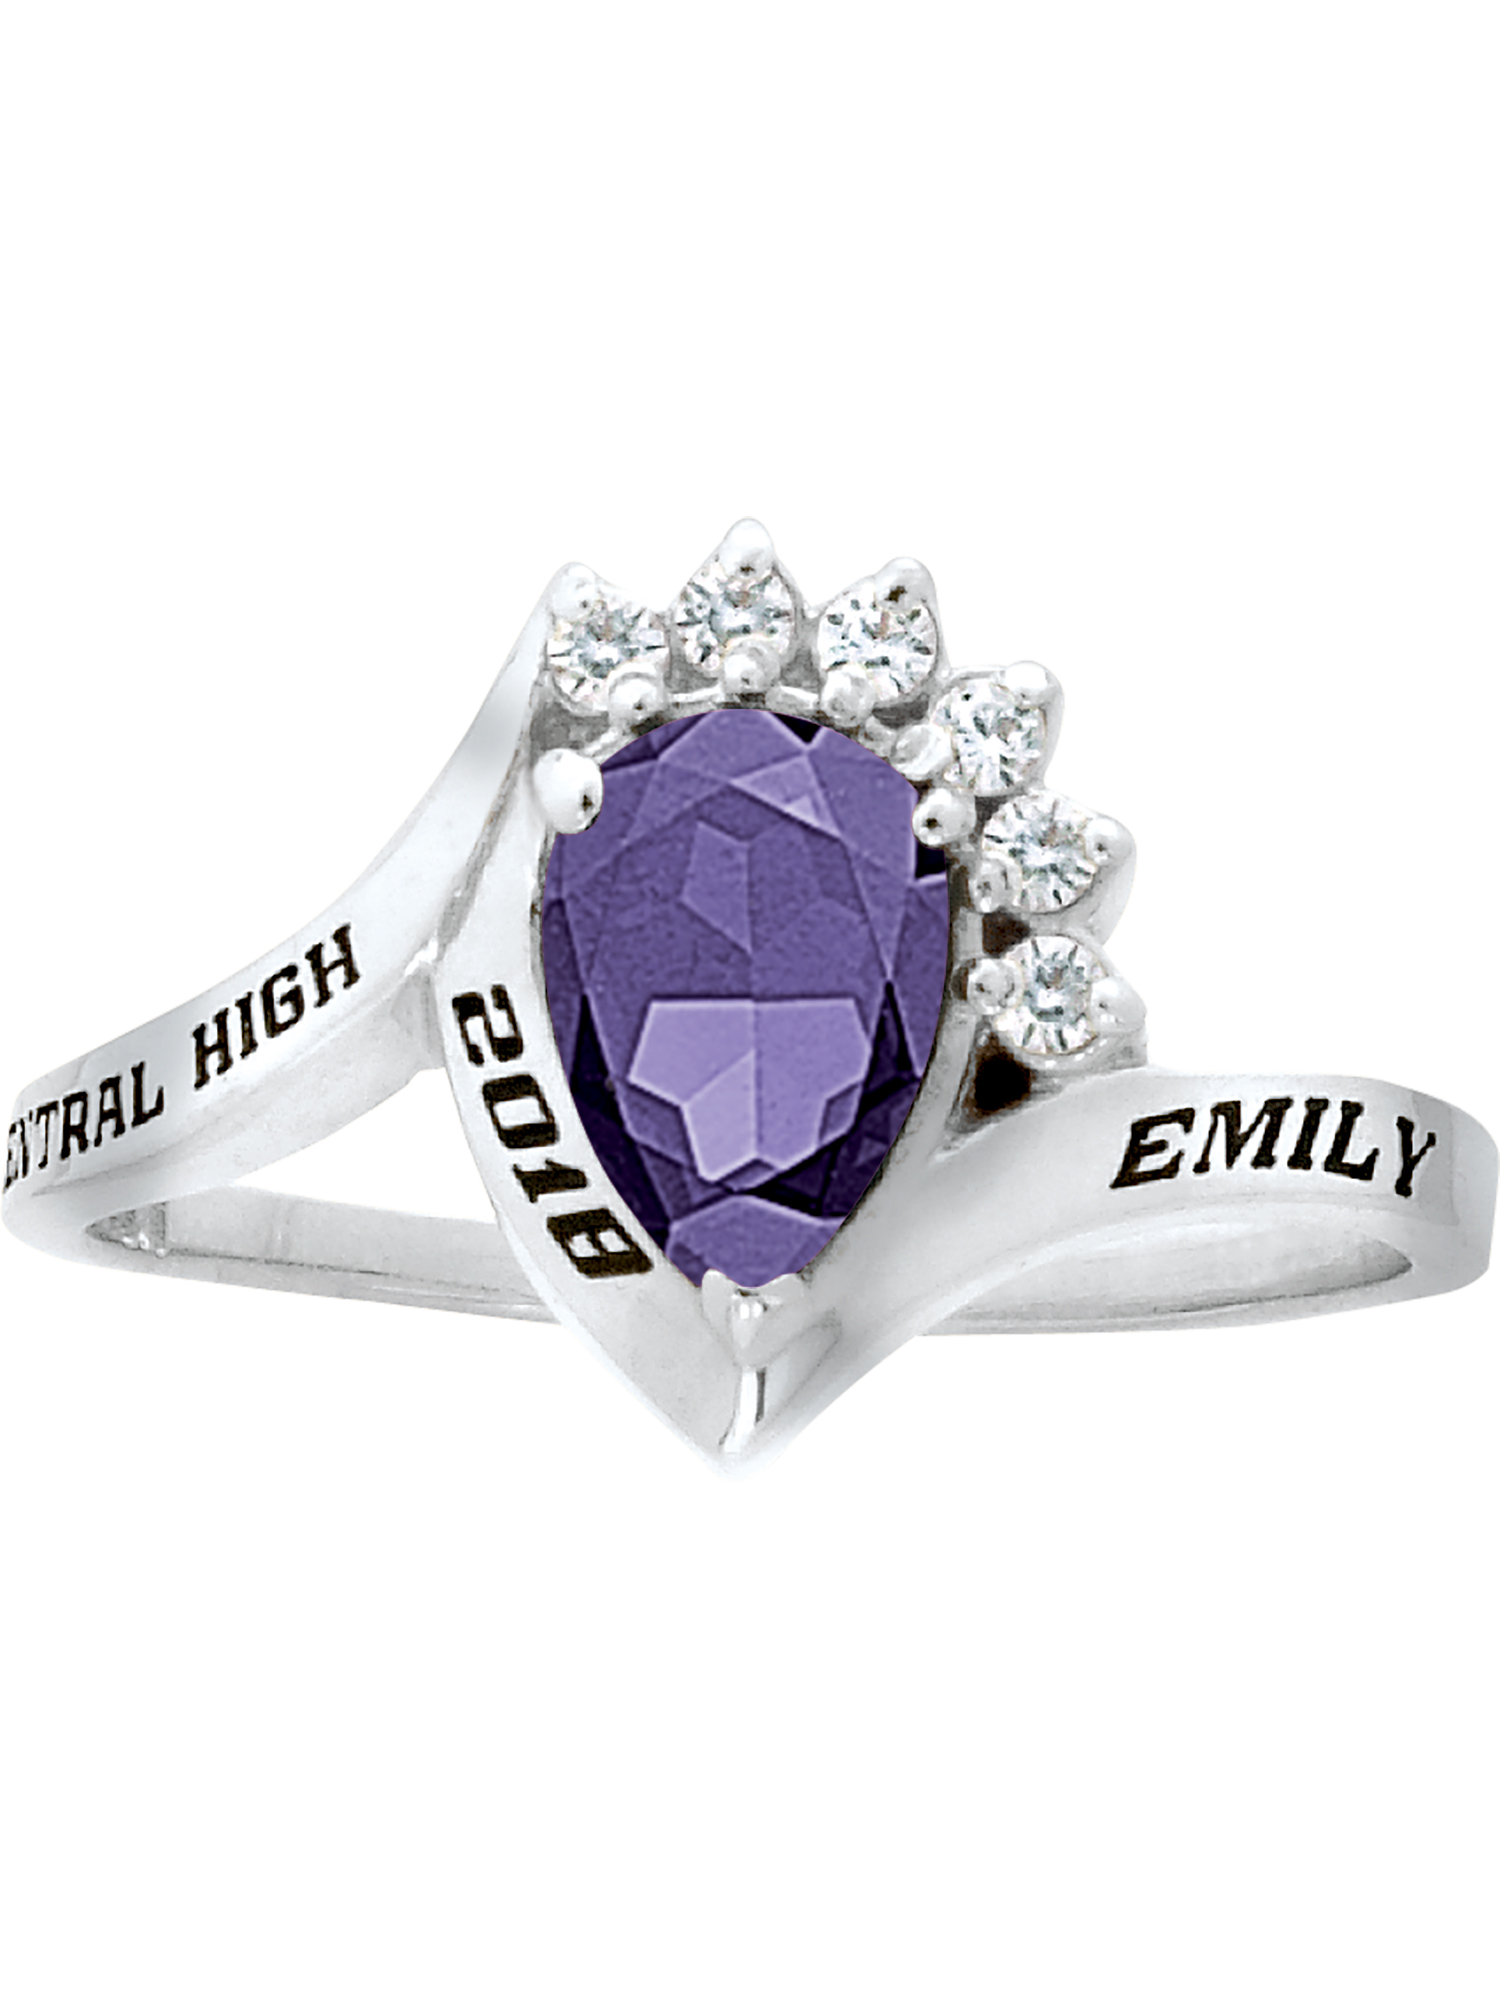 Keepsake Personalized Women's Princess Fashion Class Ring available in Silver Plus, 10kt and 14kt Yellow and White Gold